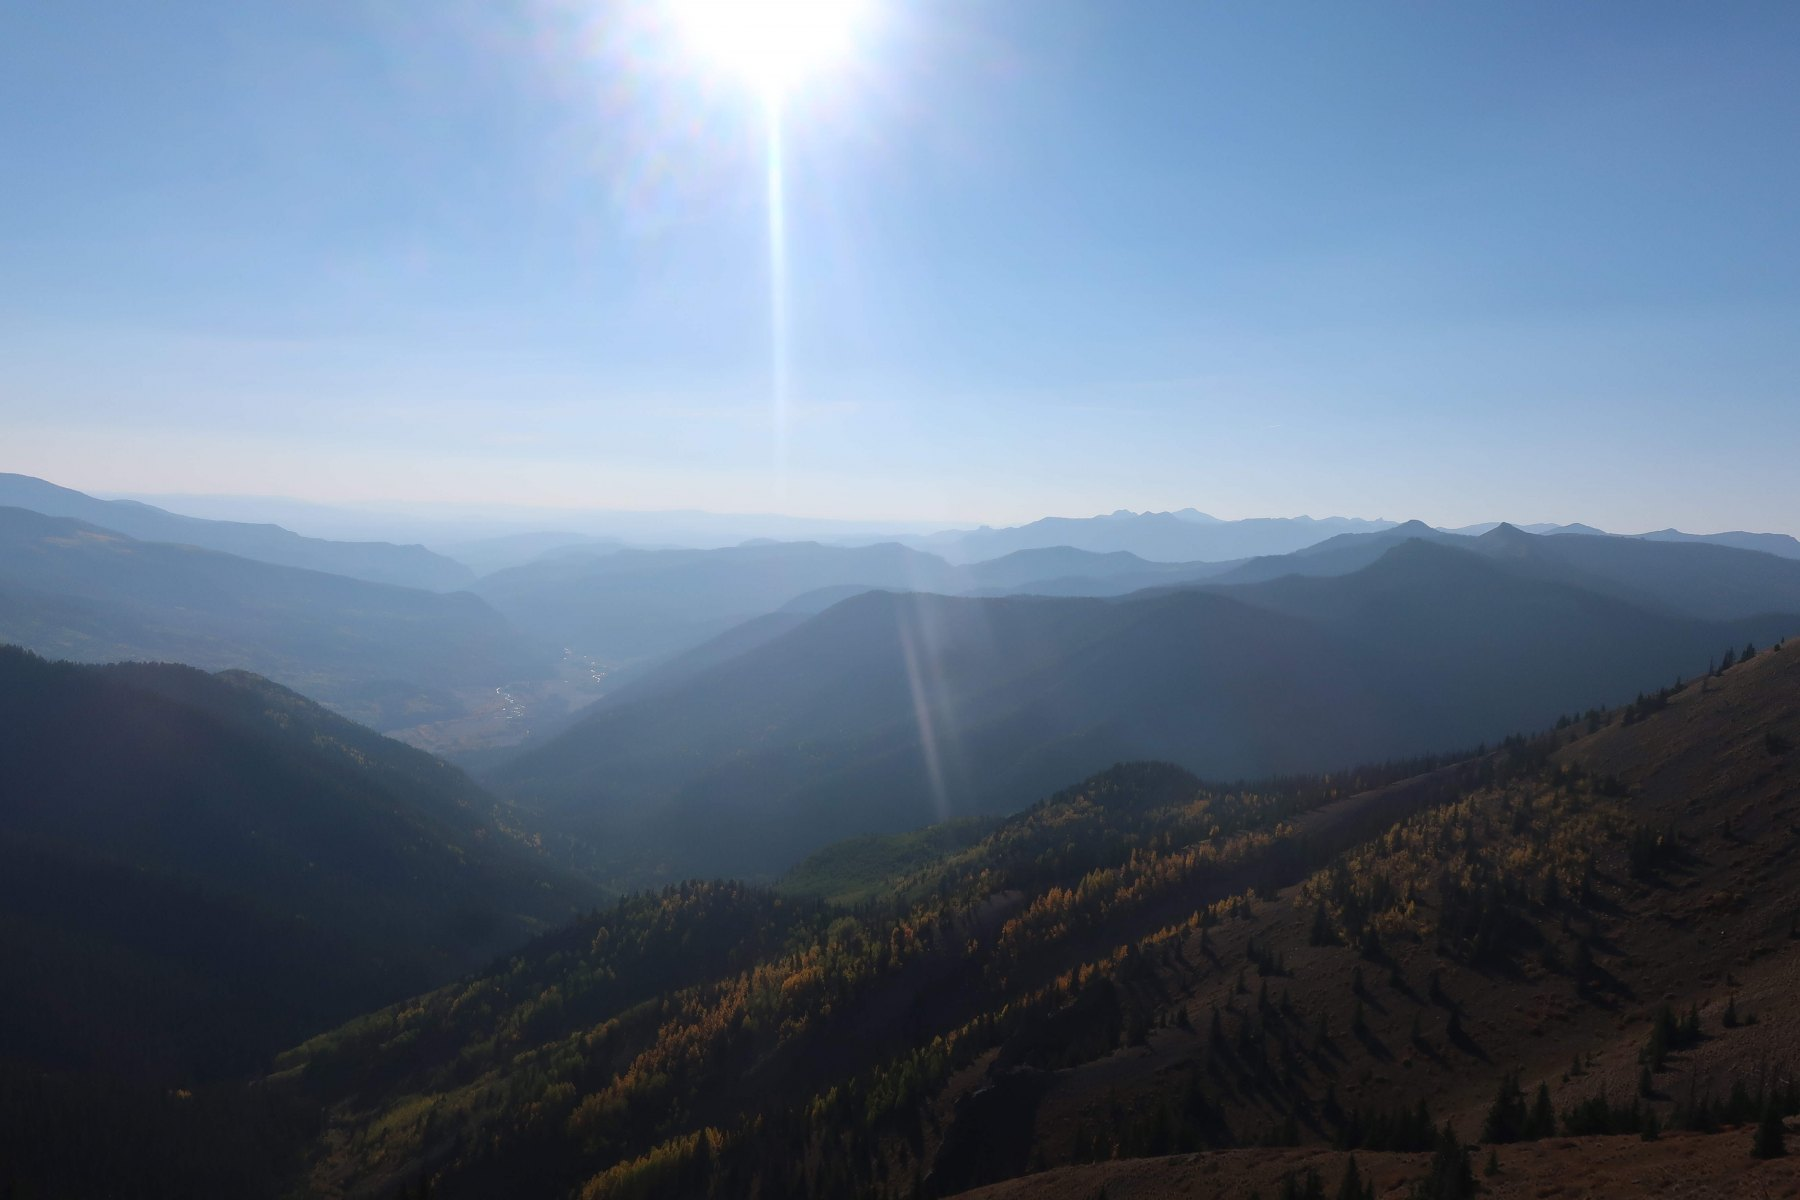 9-Friday-looking-out-over-the-mountains-